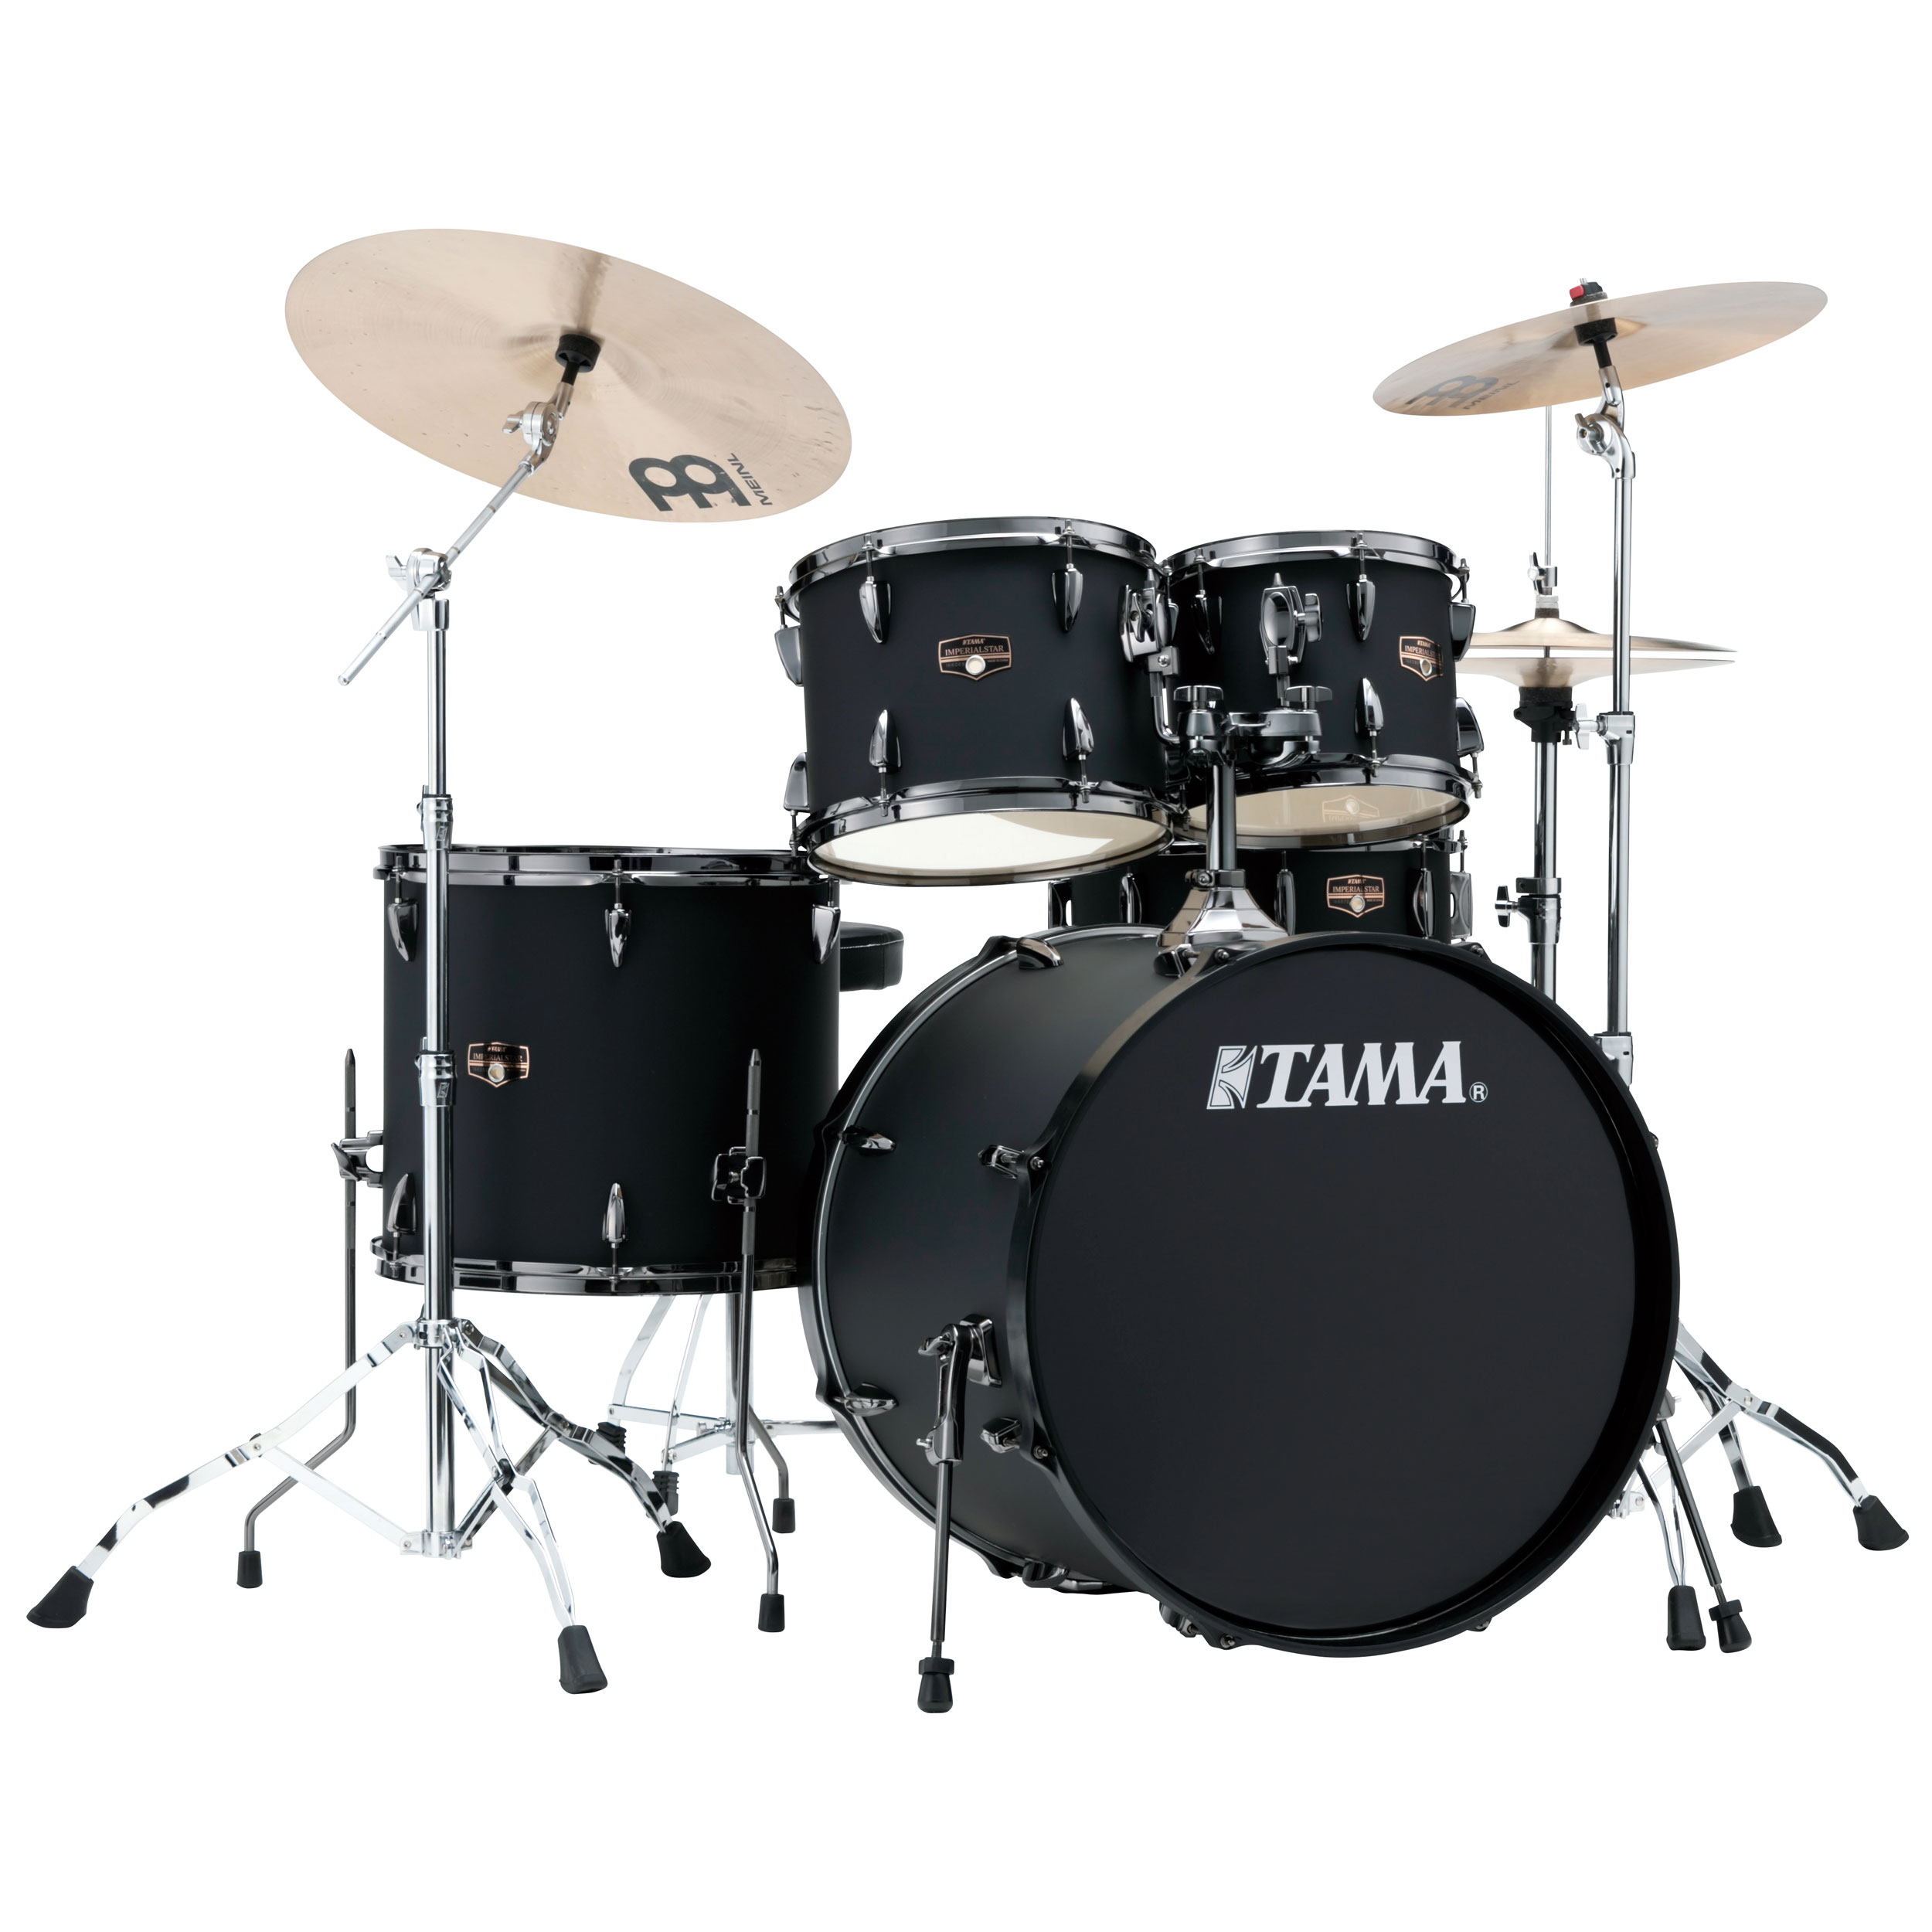 "Tama Imperialstar 5-Piece Drum Set with Black Nickel Hardware and Cymbals (22"" Bass, 10/12/16"" Toms, 14"" Snare)"